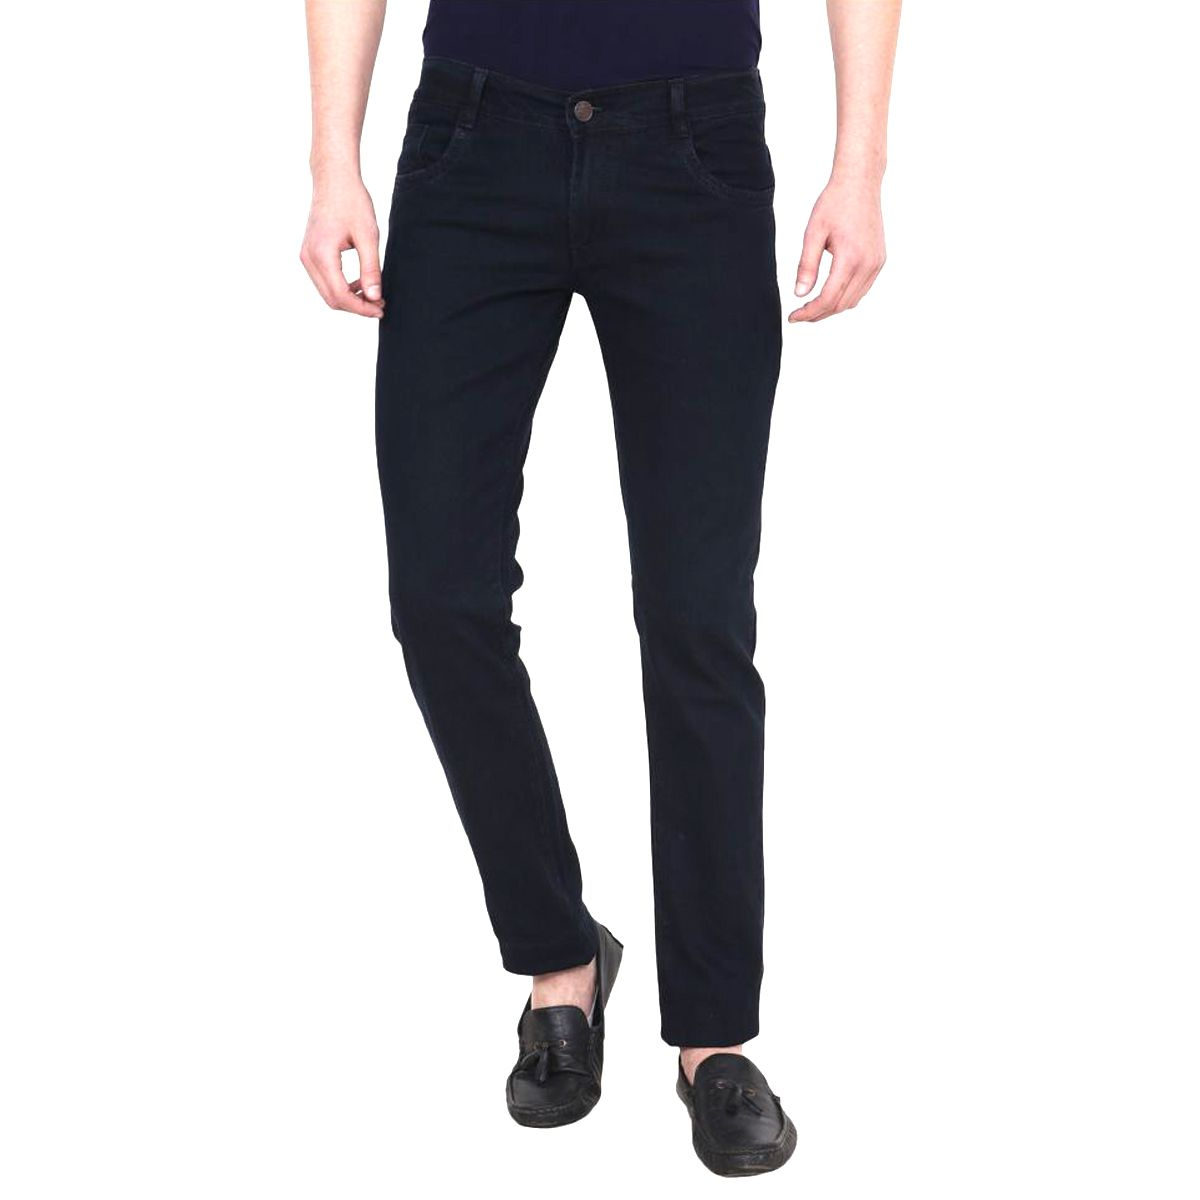 Masterly weft Black Slim Jeans